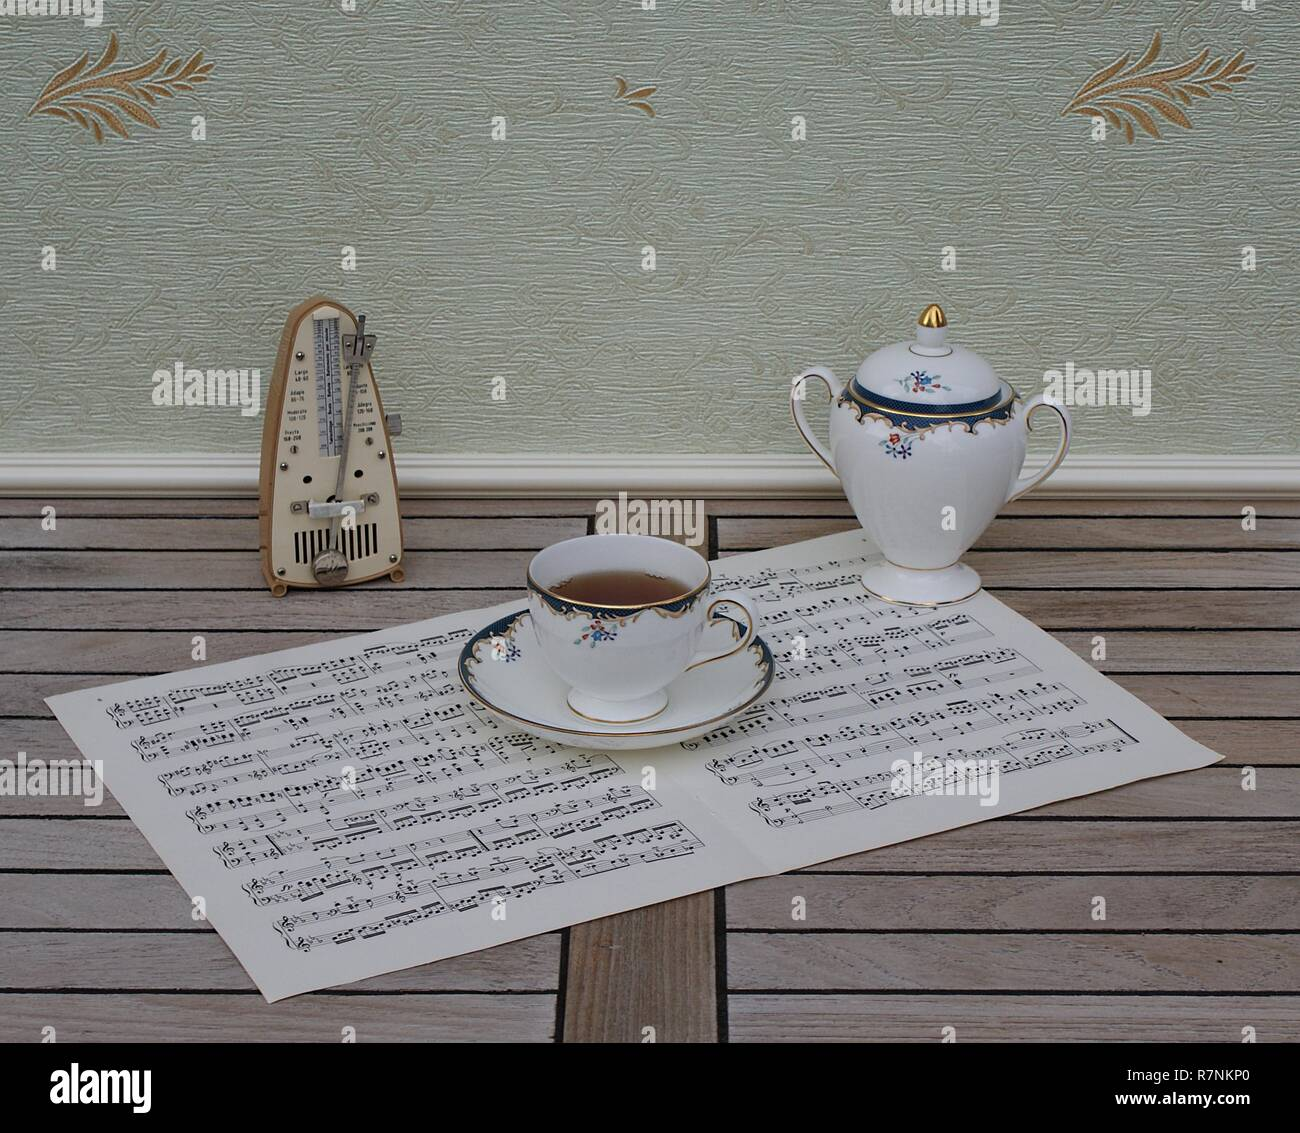 English teacup with saucer and sugar bowl, fine bone china porcelain, and a metronome for music on a sheet of music - Stock Image